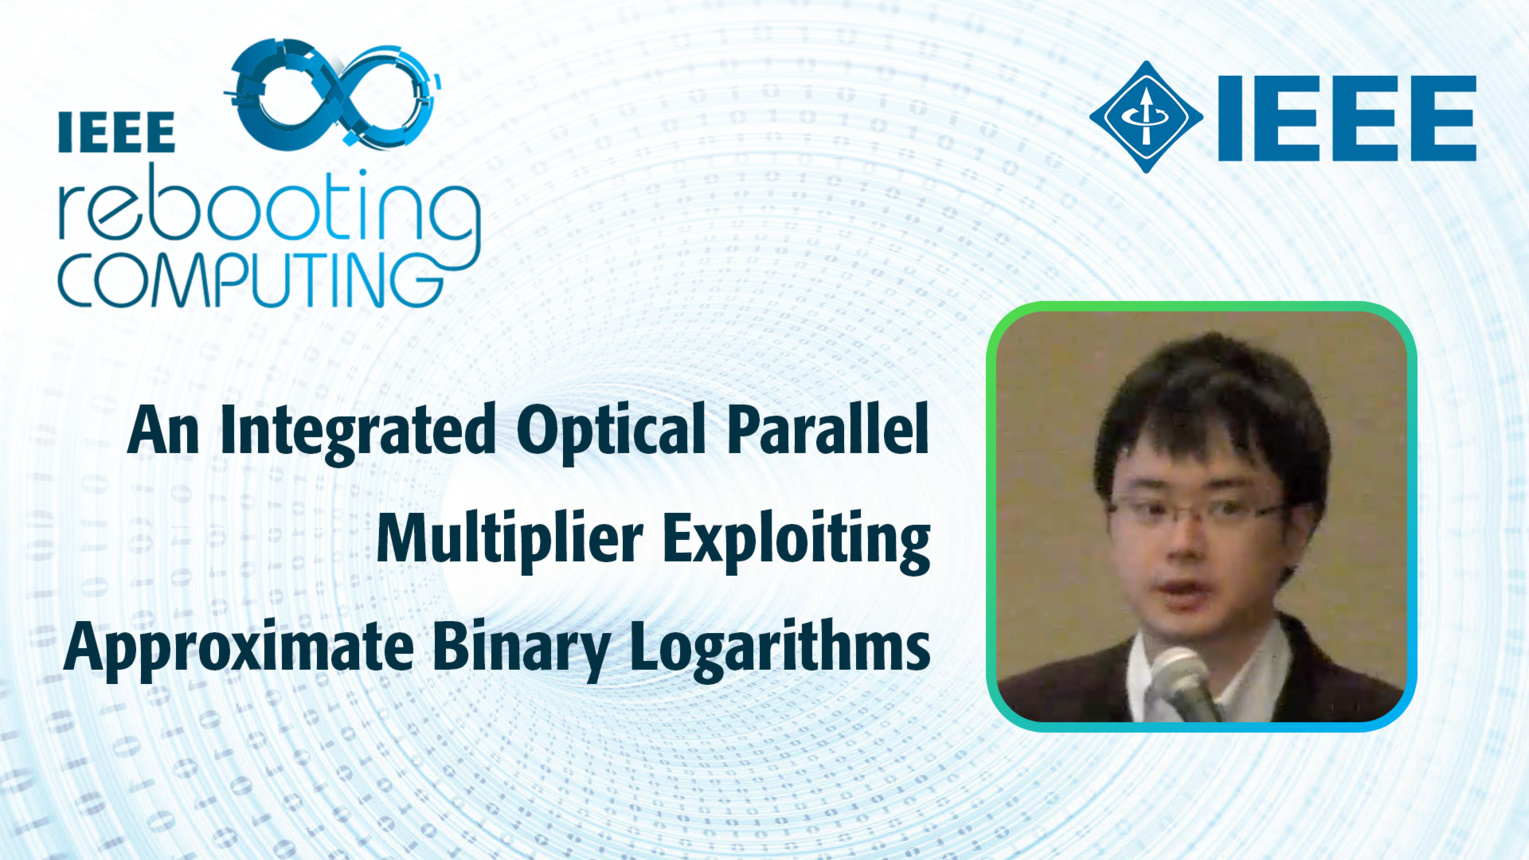 An Integrated Optical Parallel Multiplier Exploiting Approximate Binary Logarithms - Jun Shiomi - ICRC 2018